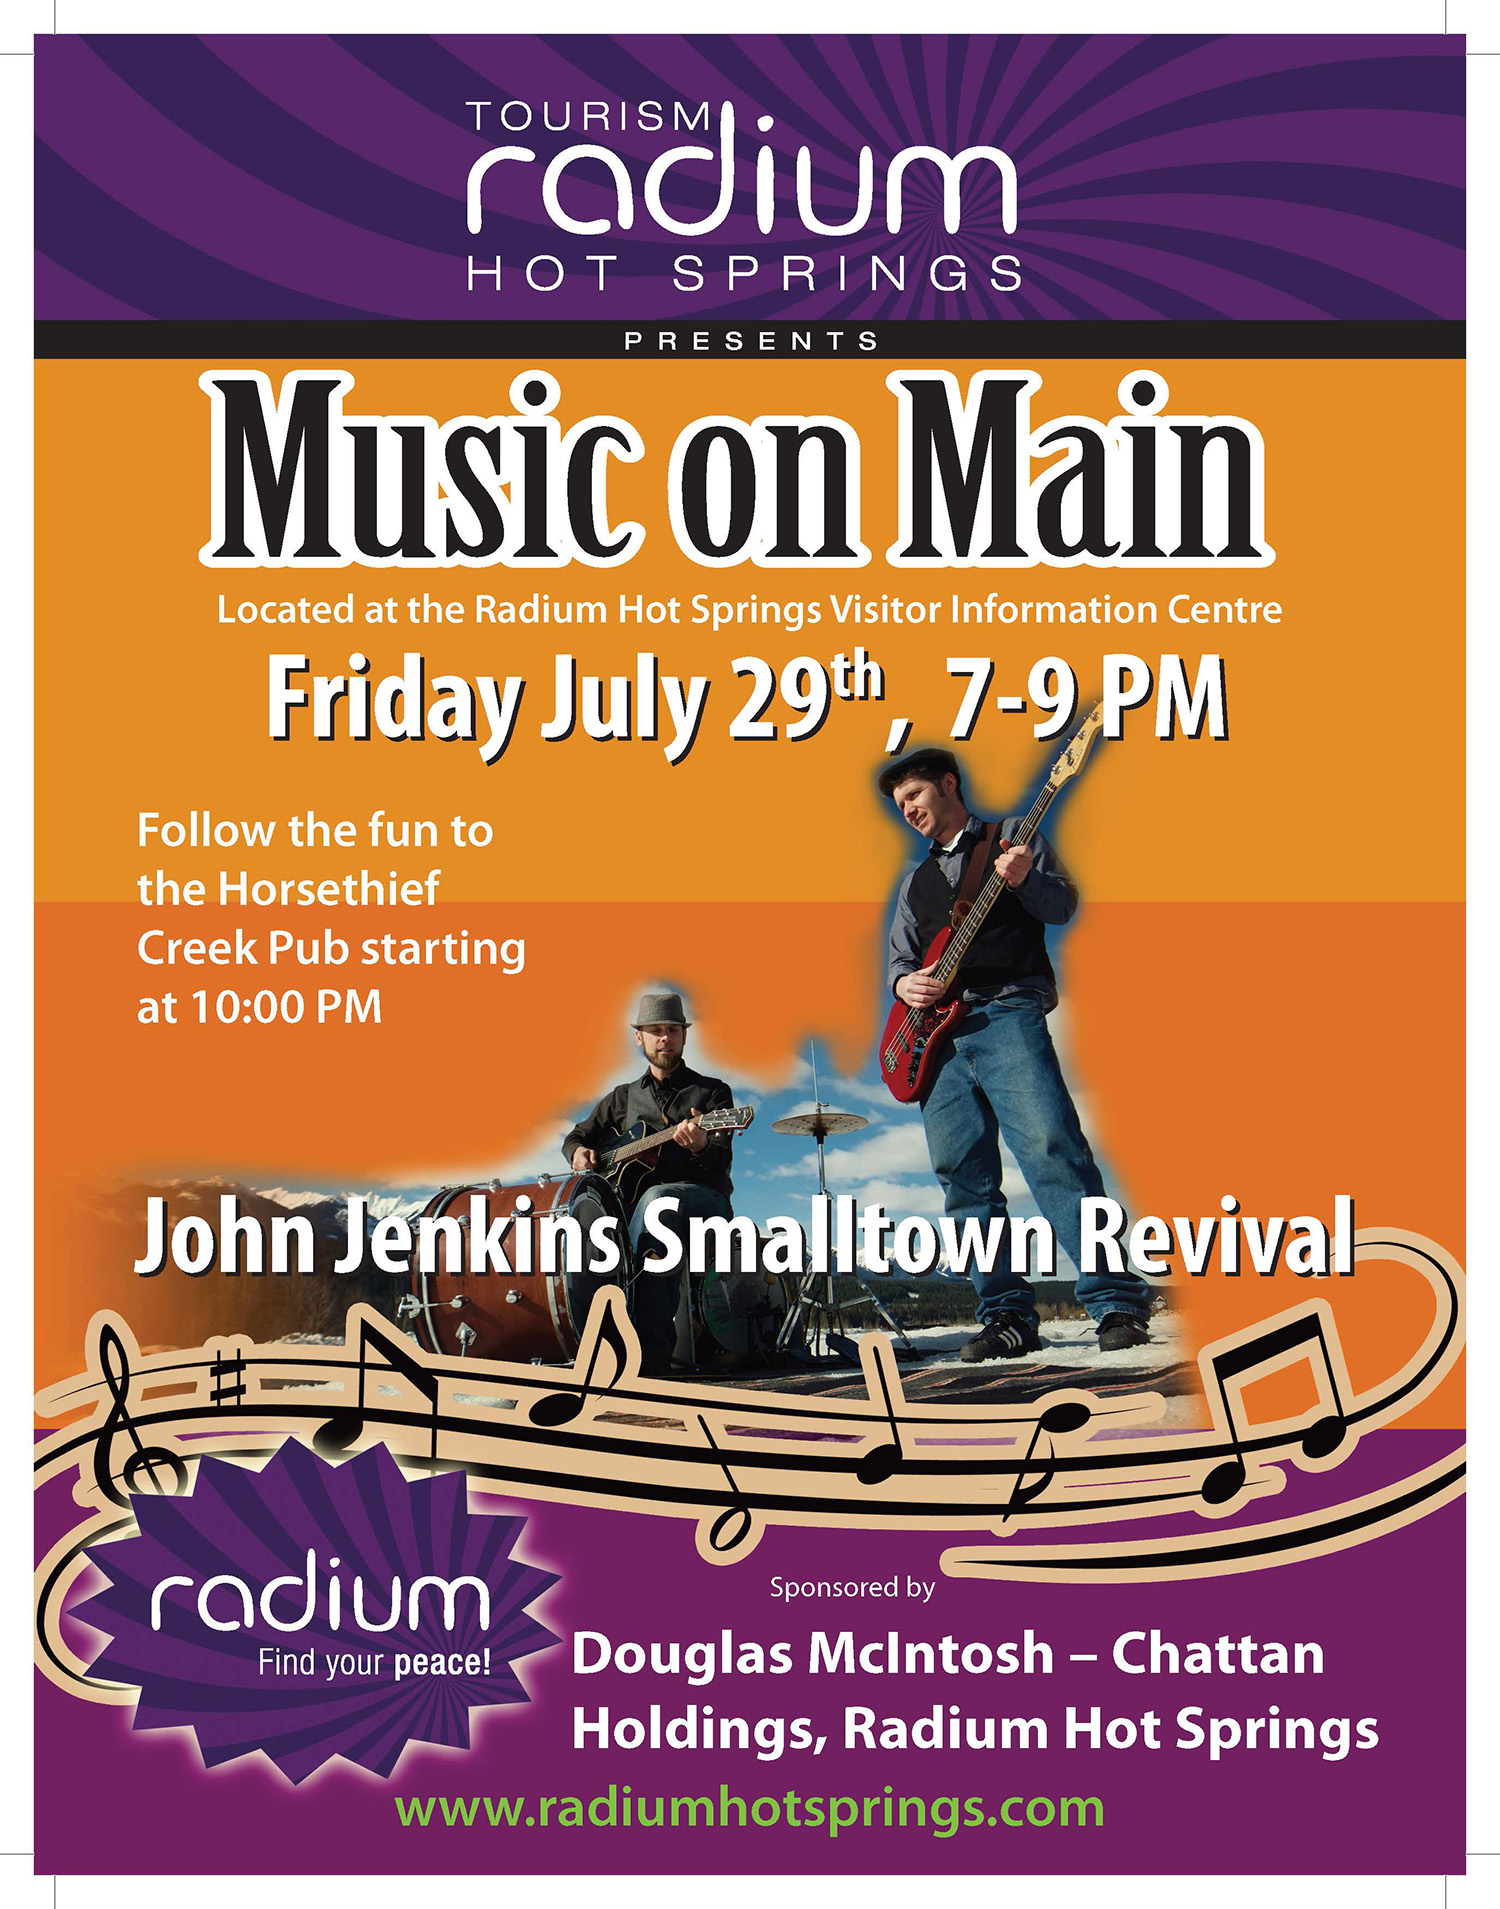 John Jenkins Smalltown Revival